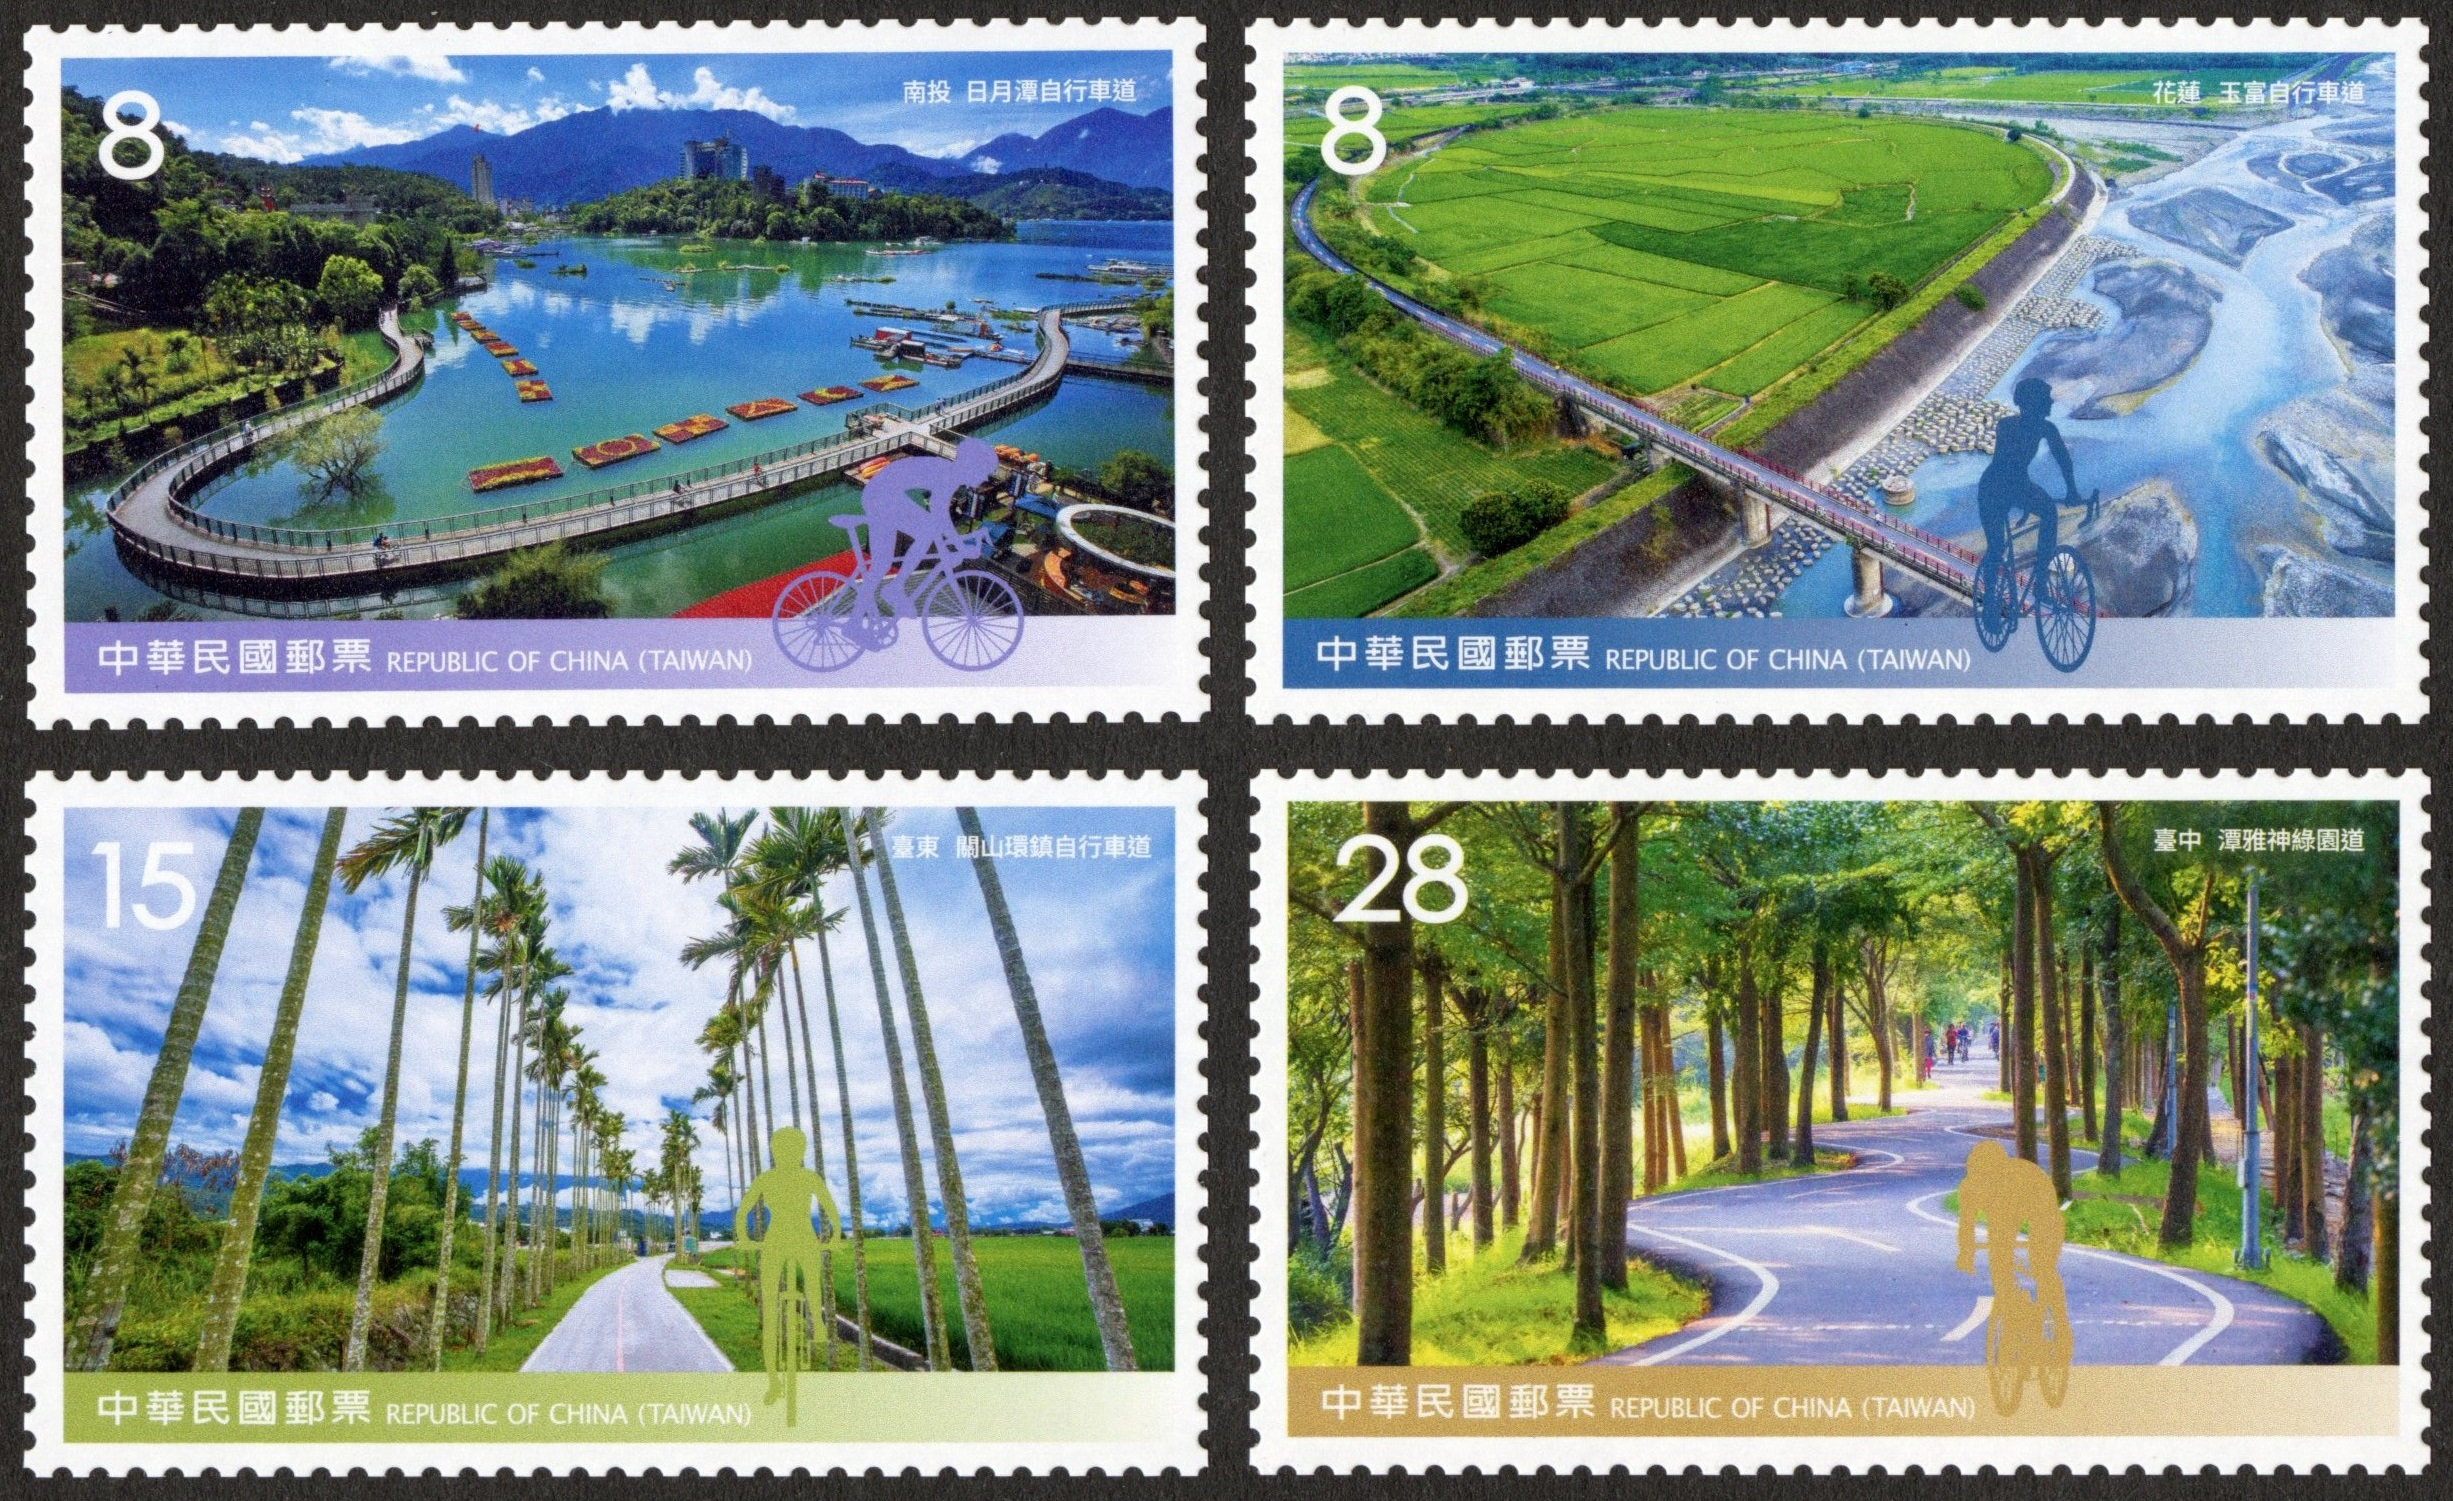 Bike Paths of Taiwan Postage Stamps (Issue of 2021)